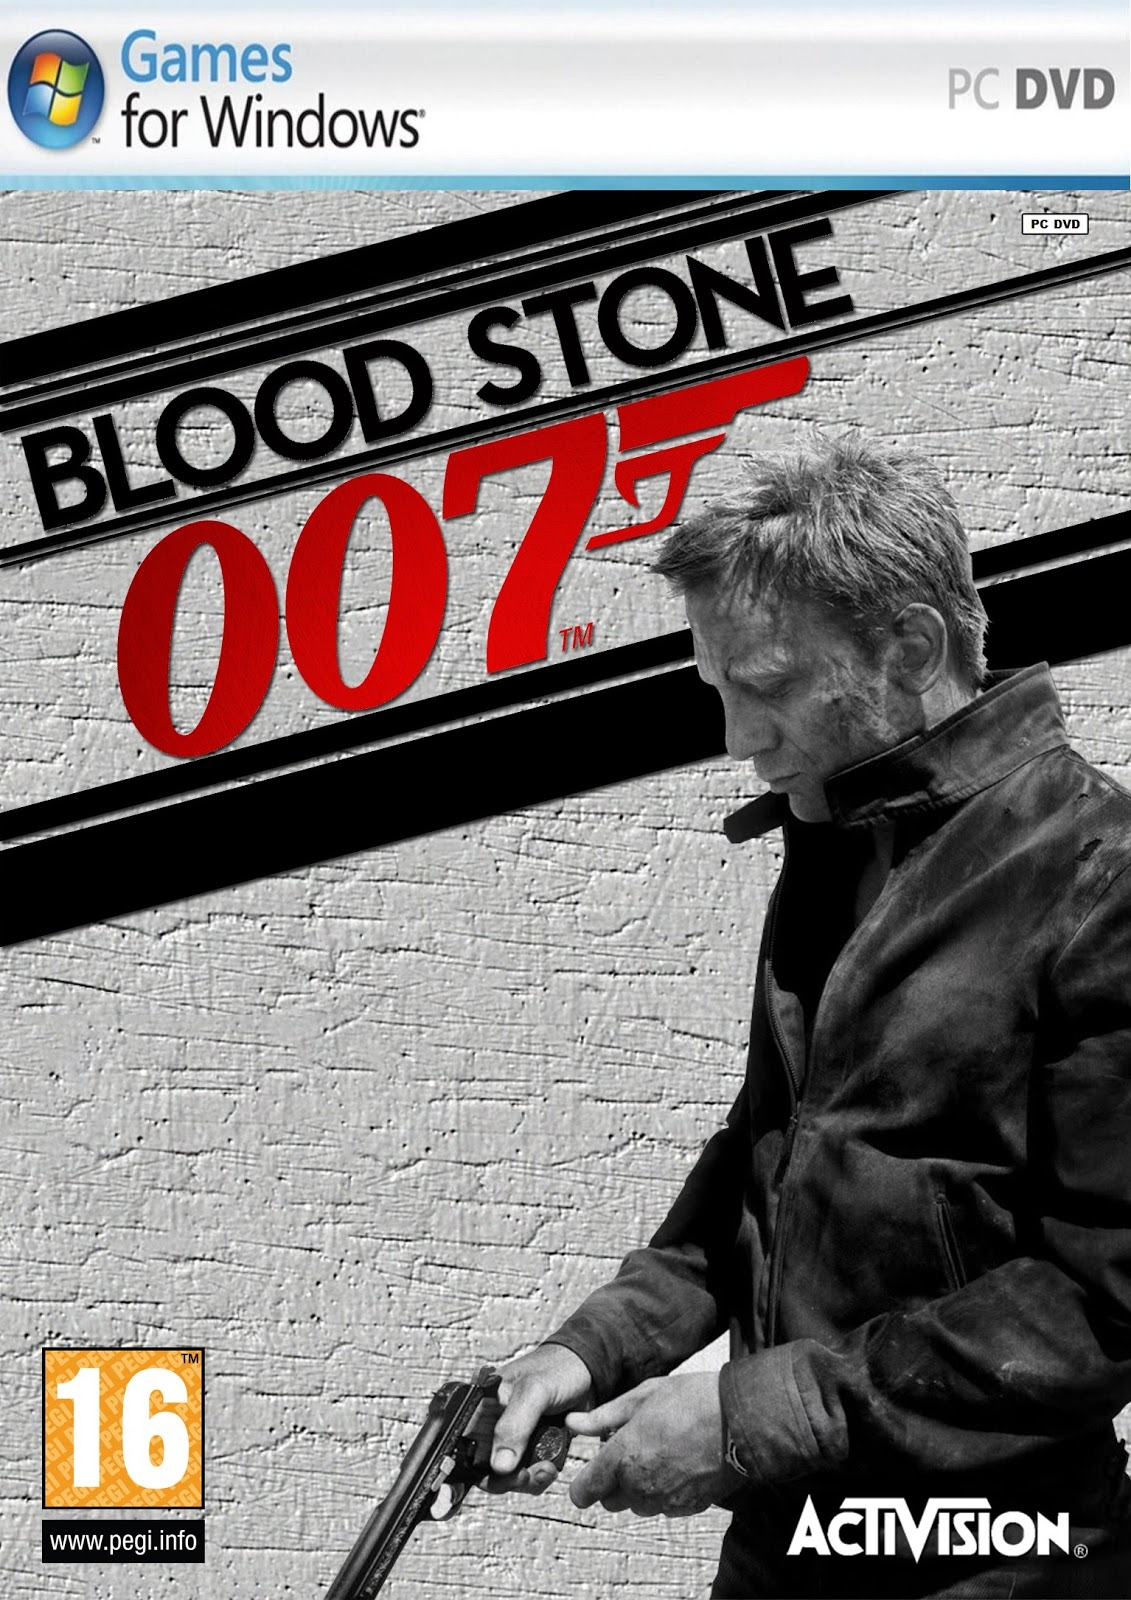 pc-007-james-bond-blood-stone